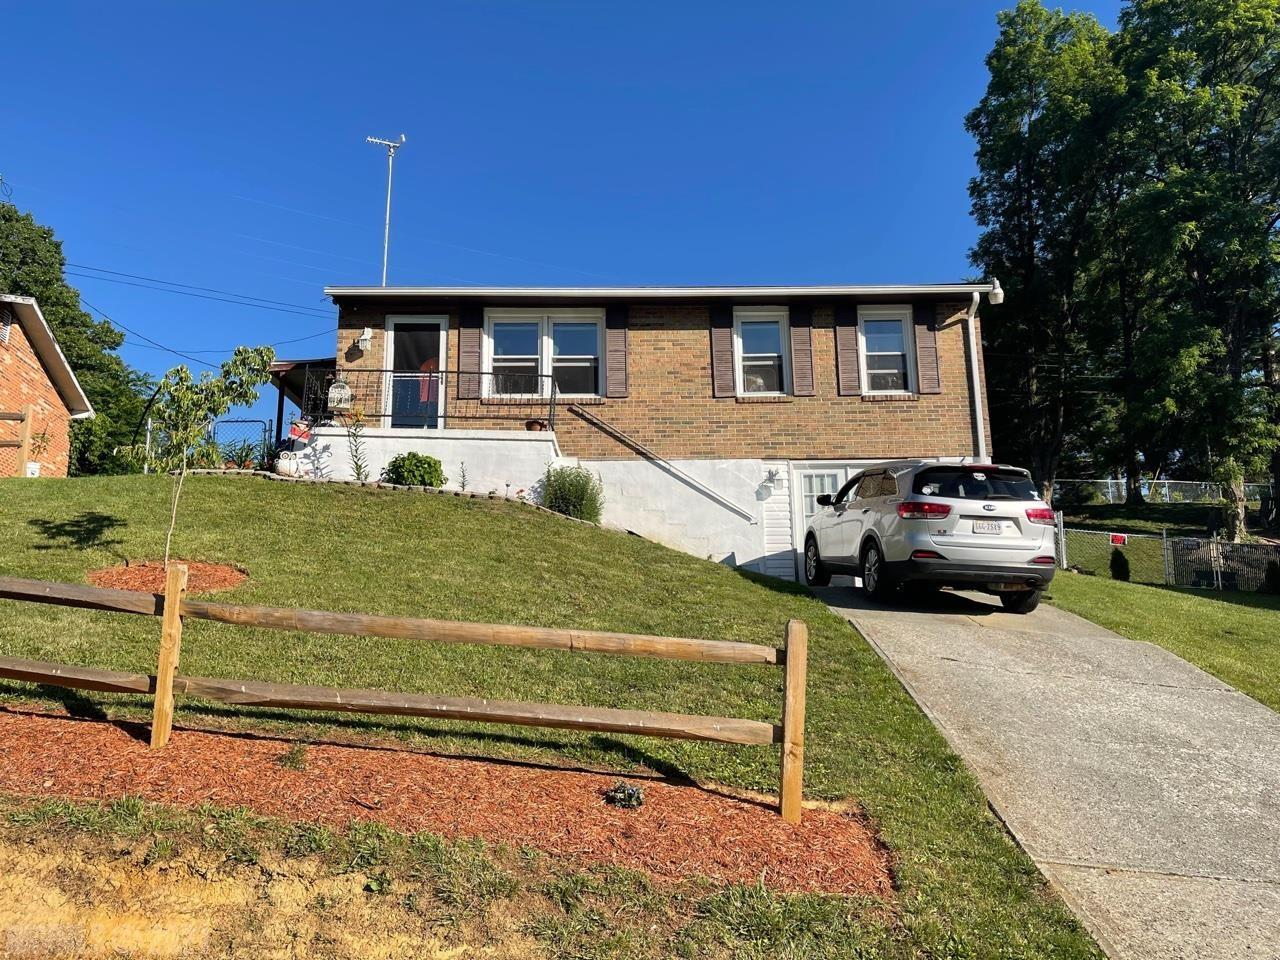 Remodeled Brick Ranch. Updated kitchen counter tops and cabinets. Flex room in the basement could be used as a bedroom or den. Master bedroom is very large and has walk-out access. Fully fenced backyard is ready to go. Laundry area as a nice sized walk-in-closet. Approximately 6 minutes from Pulaski Middle School!